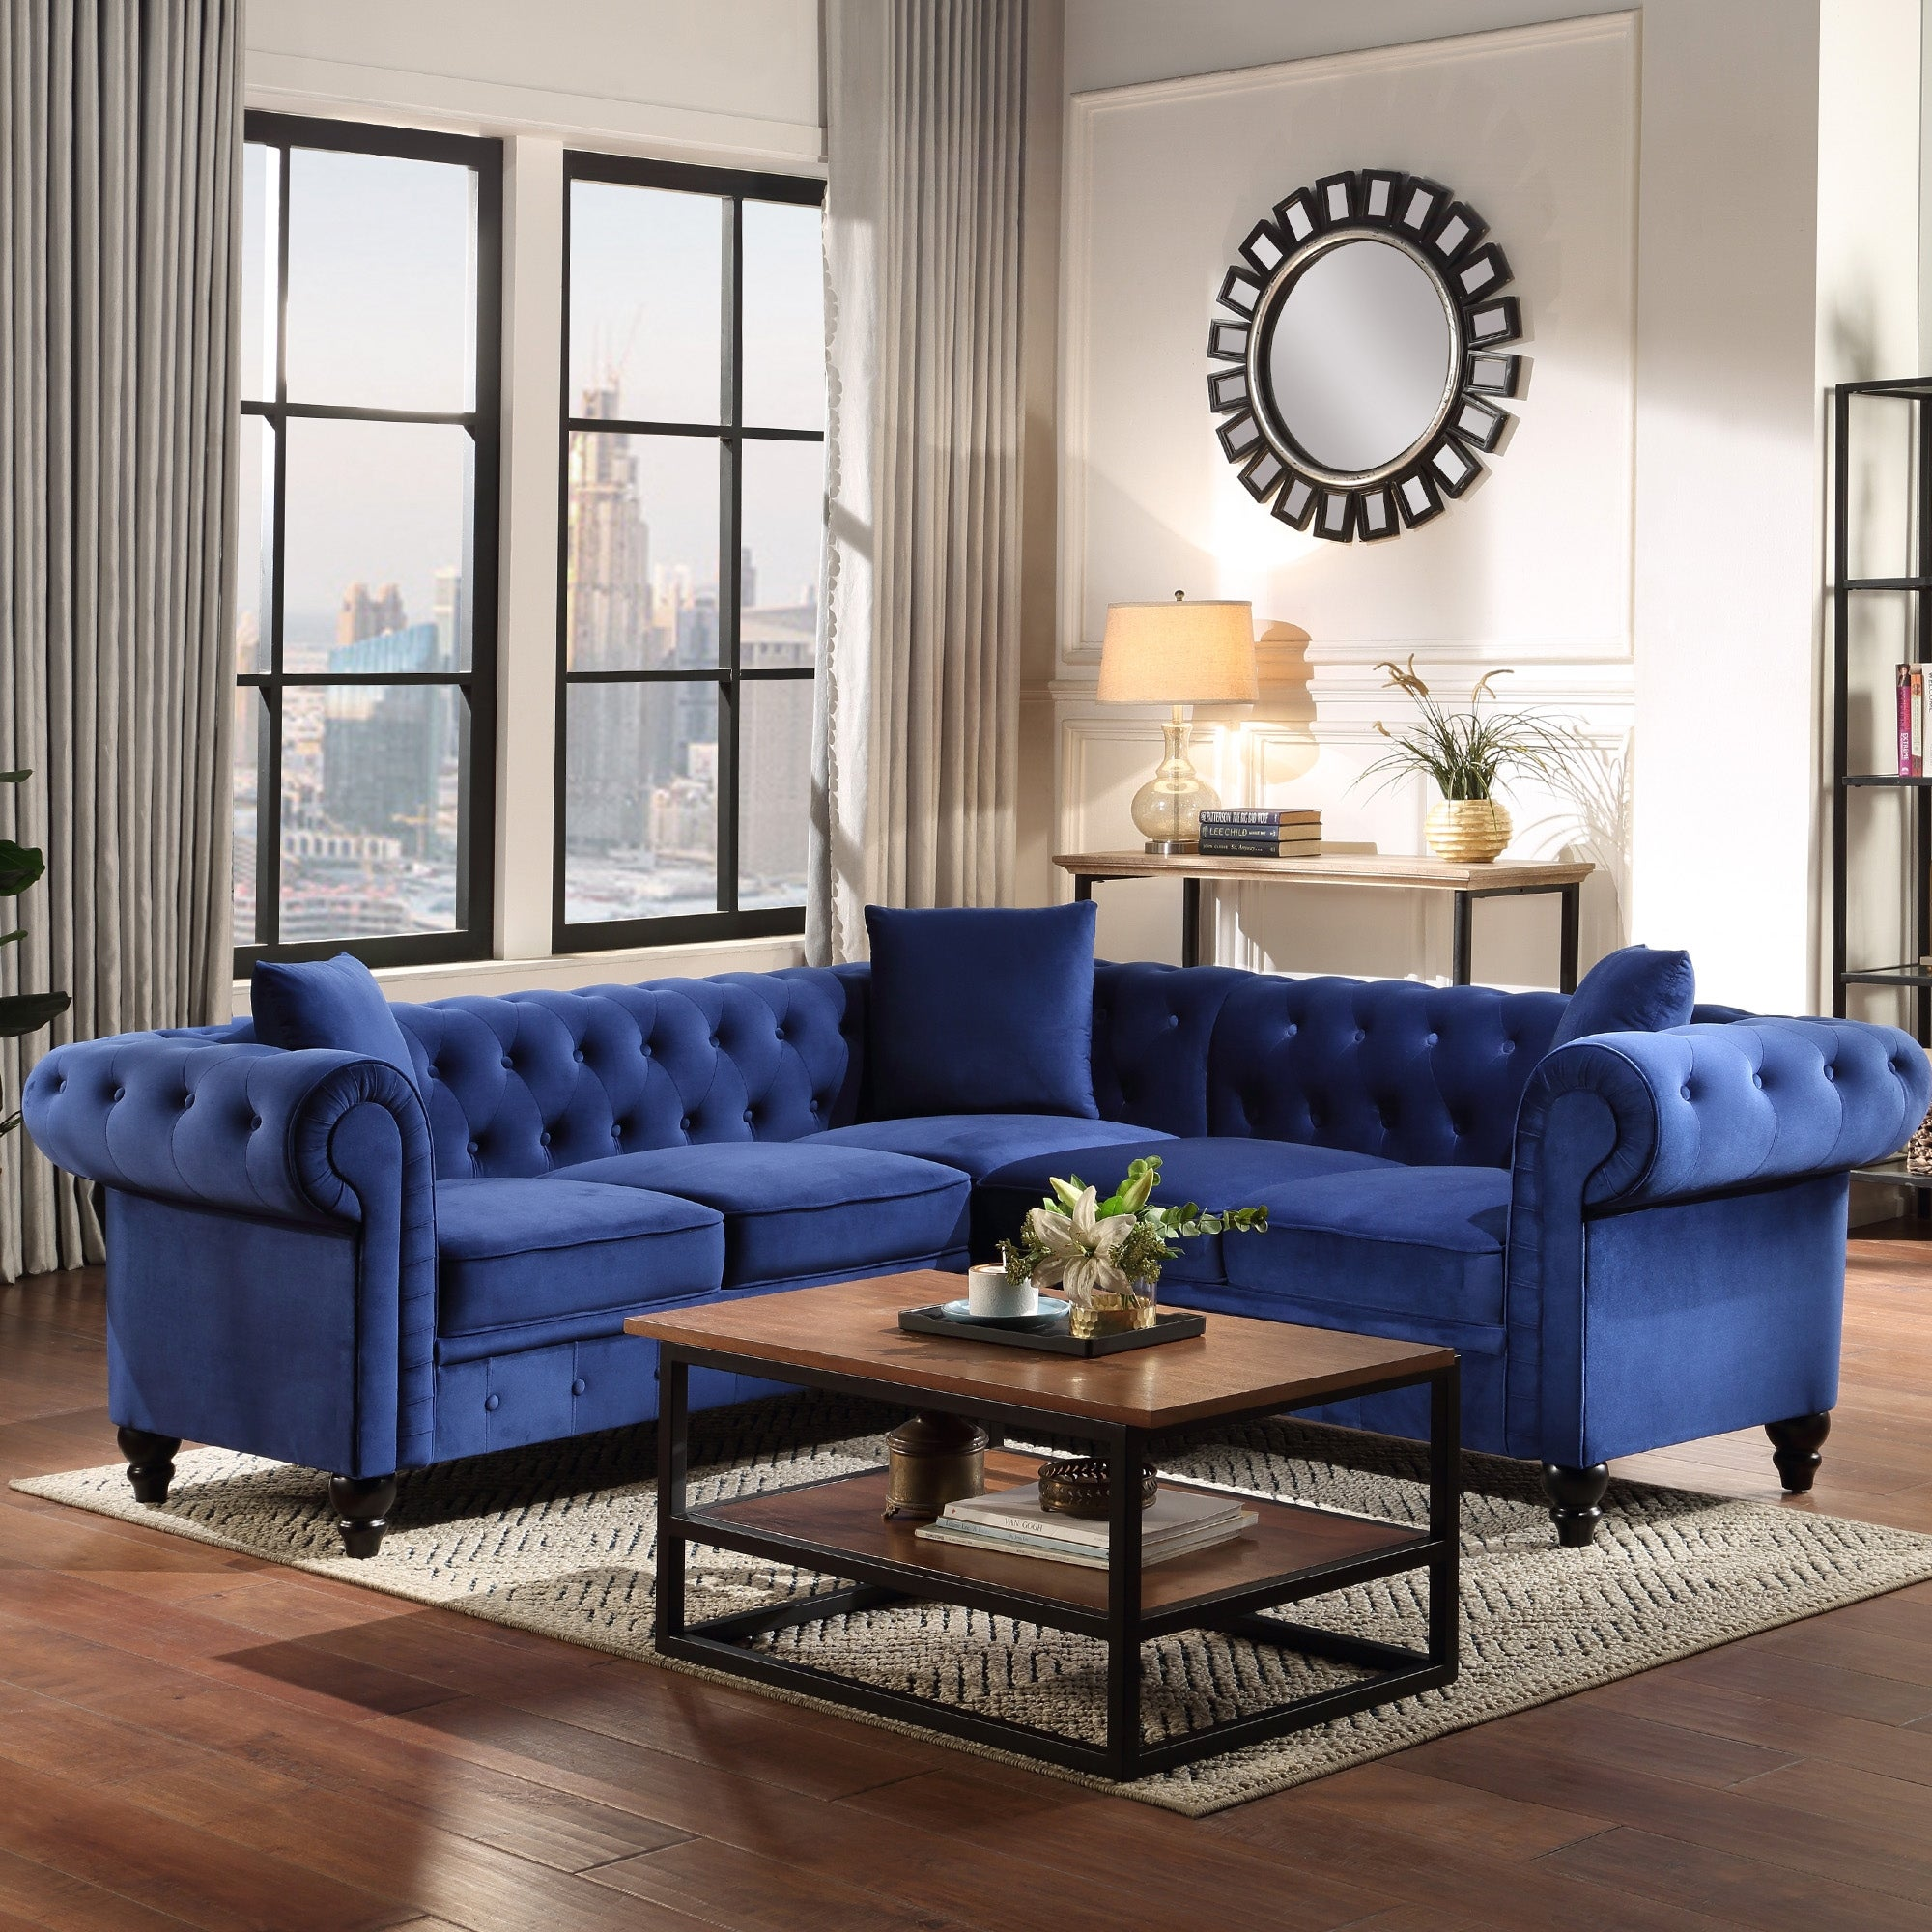 Shop Tufted Velvet Upholstered Rolled Arm Classic Chesterfield Sectional Sofa With 3 Pillows Overstock 32321857 Blue